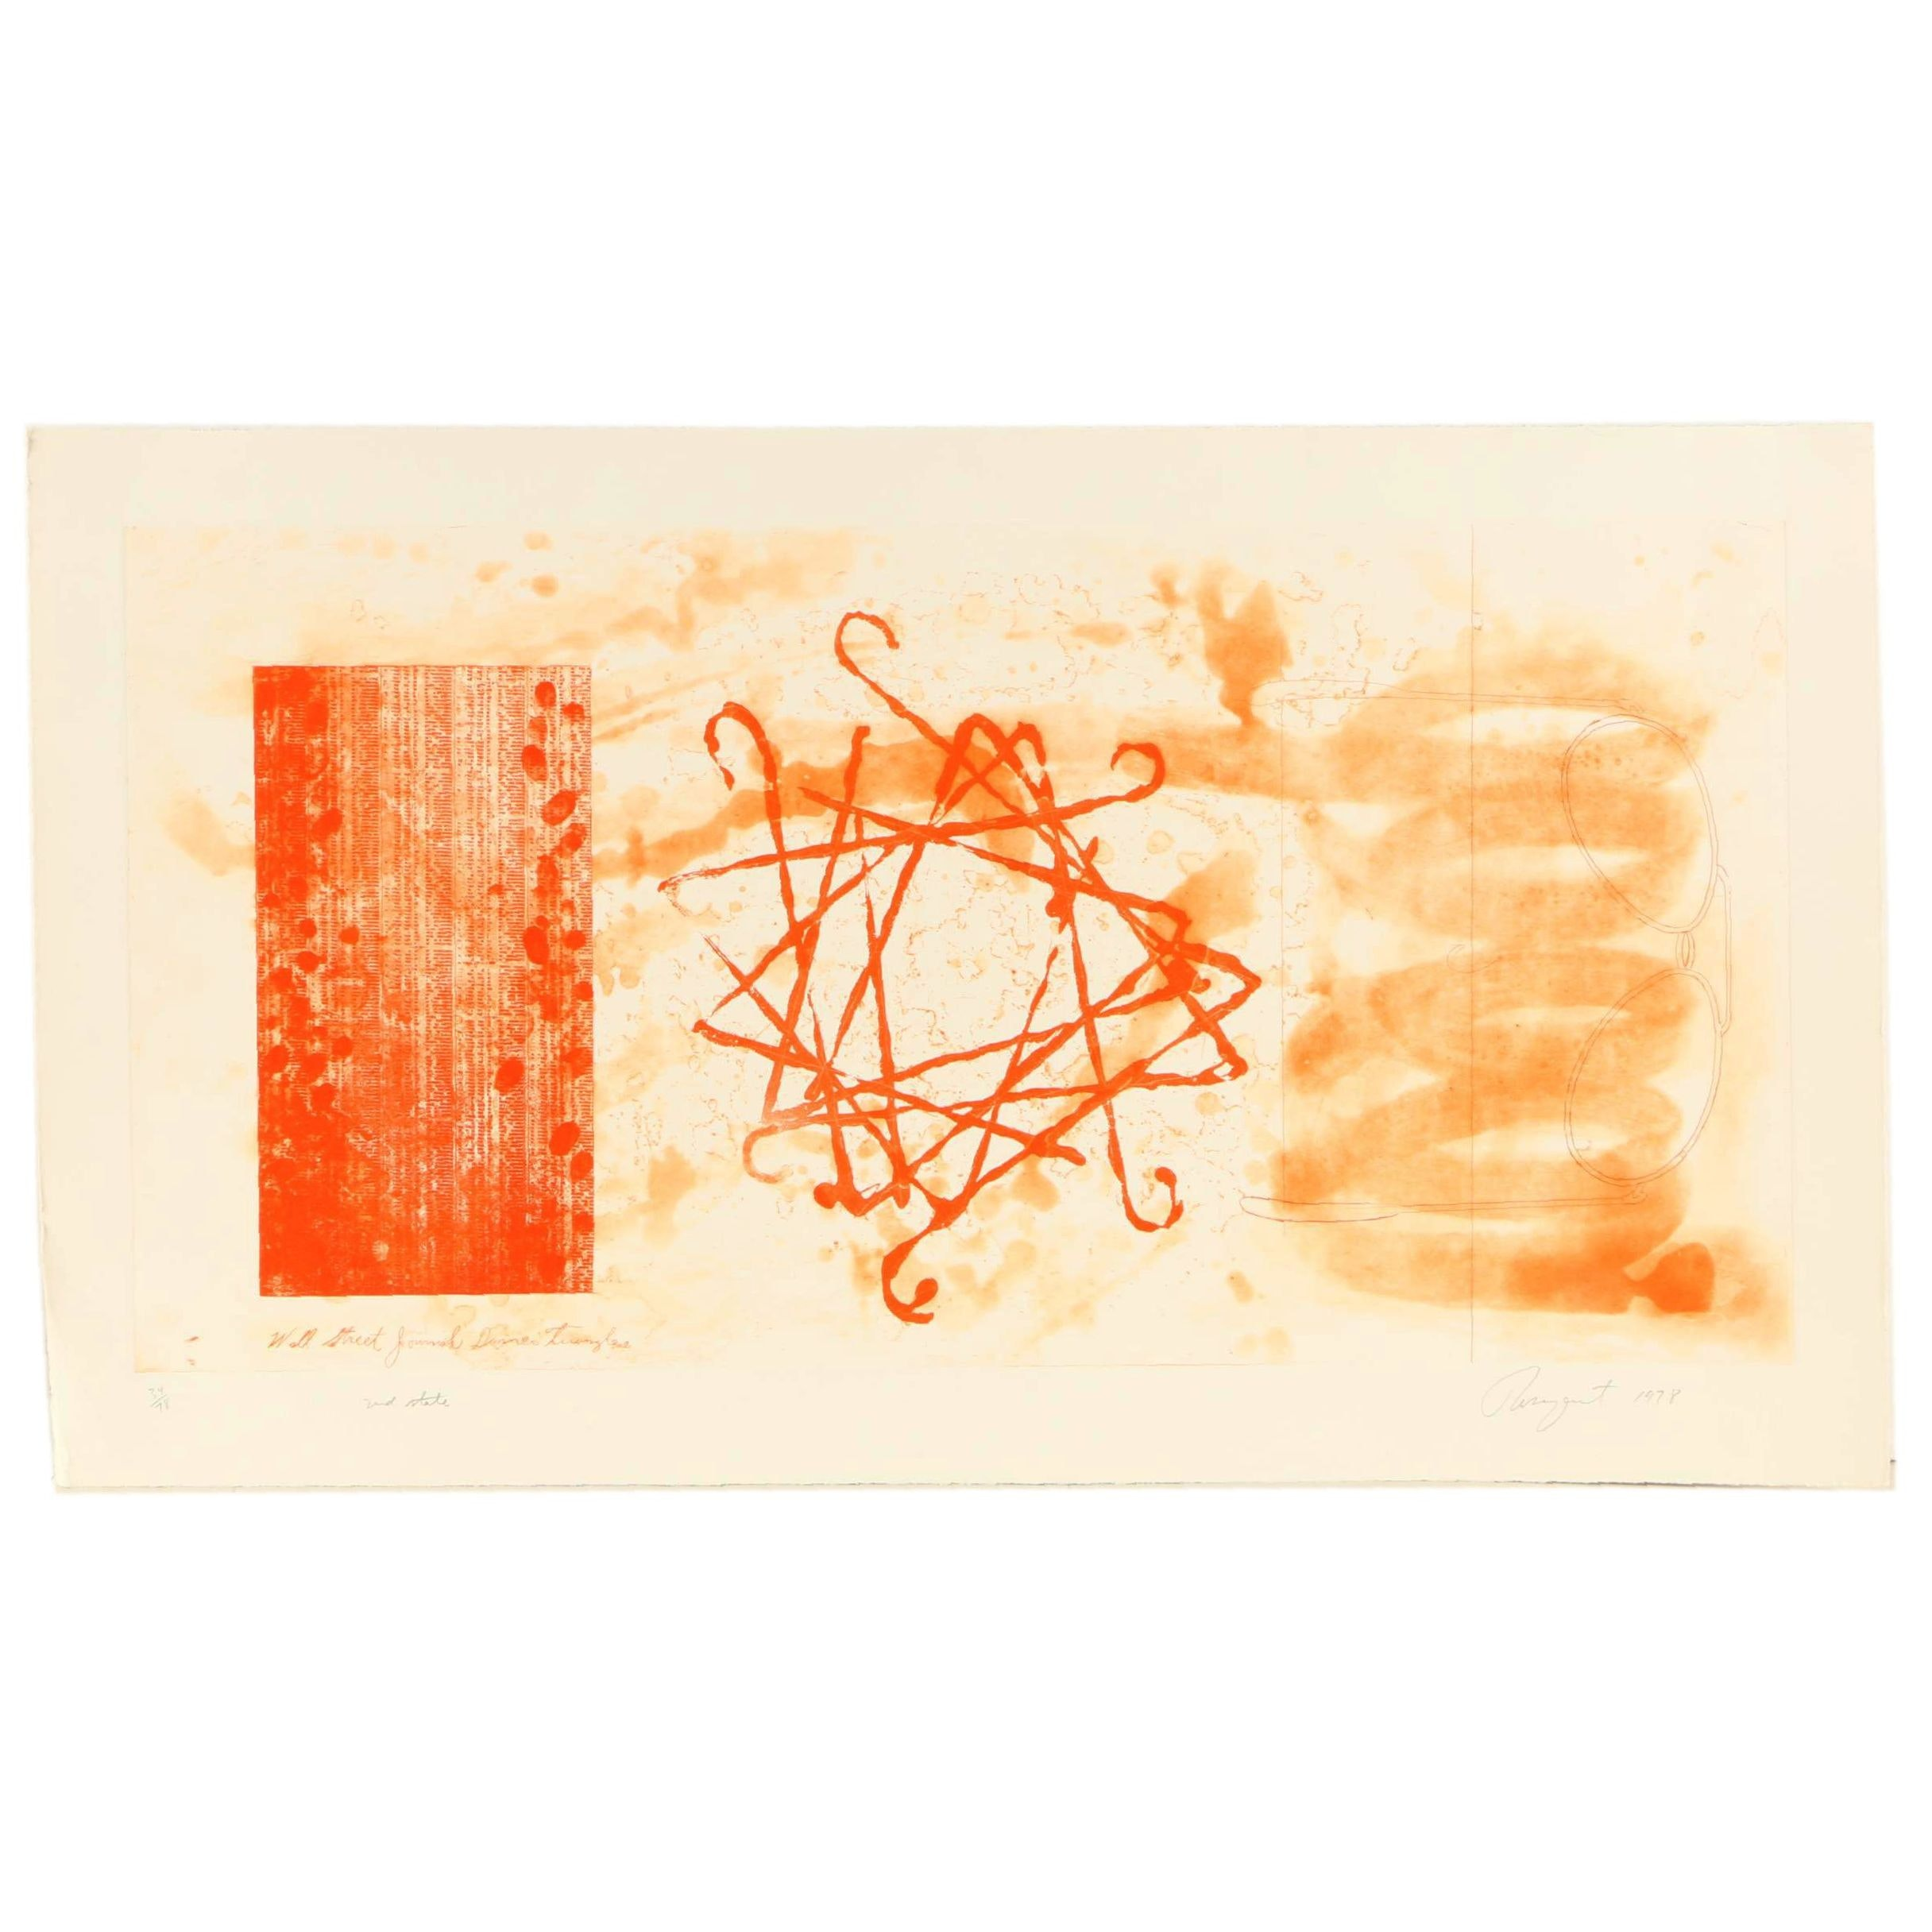 """James Rosenquist Limited Edition Print """"Wall Street Journal, Dinner Triangles"""""""